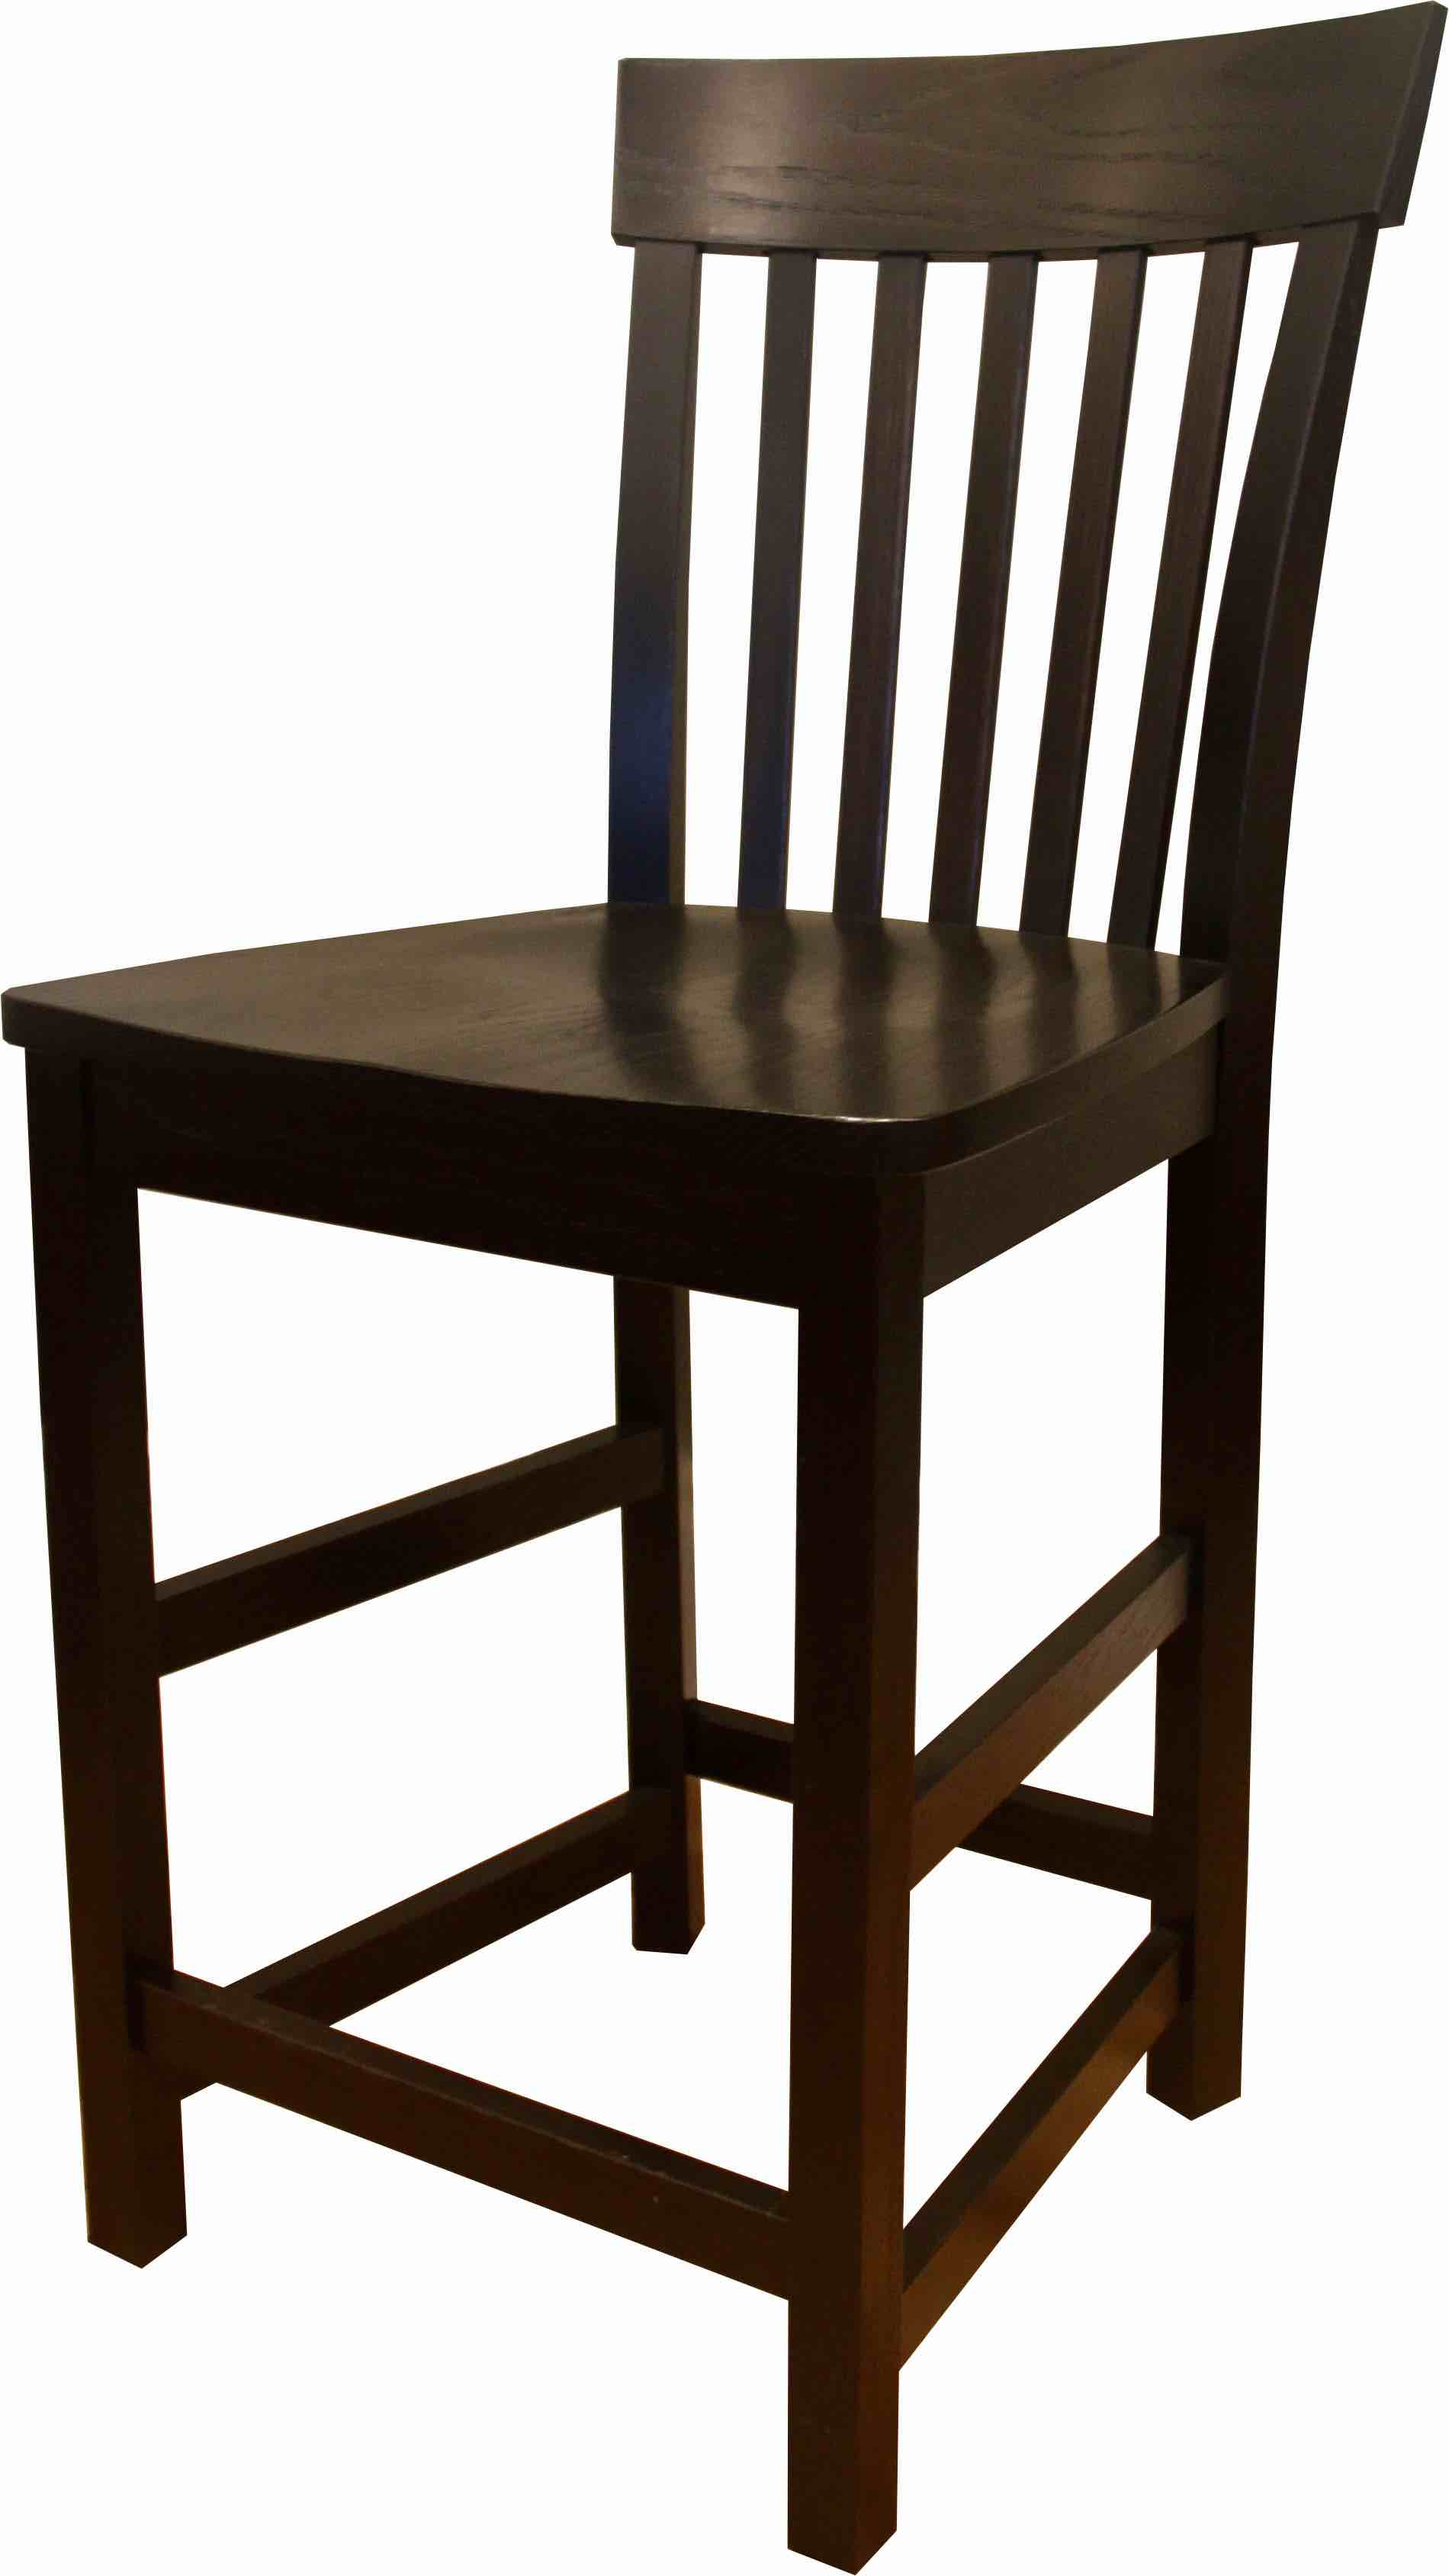 Venice bar chair this oak house handcrafted furniture